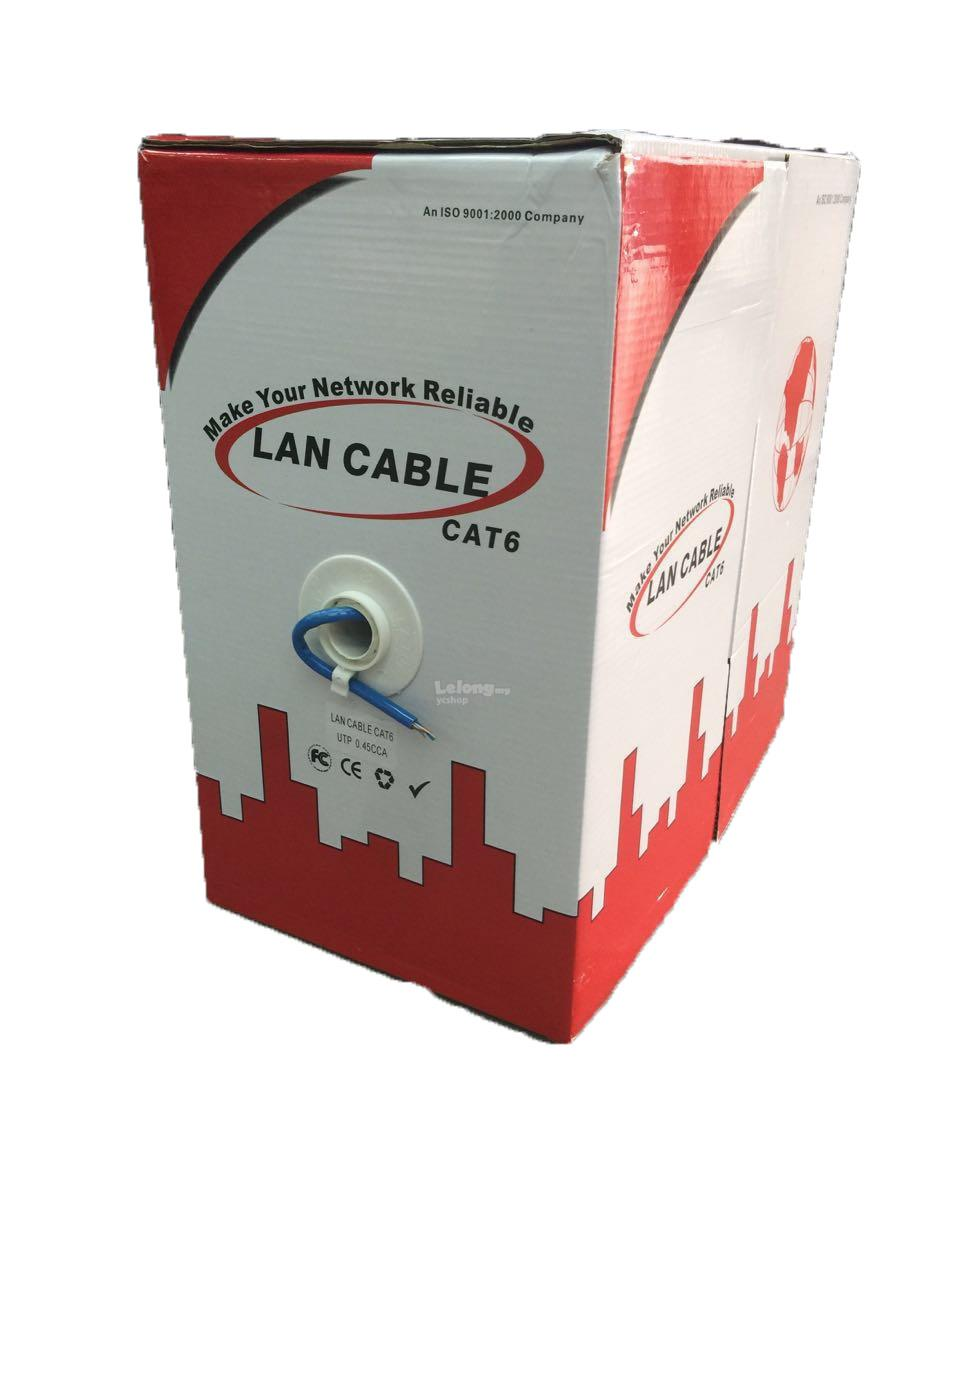 CAT6 UTP NETWORK CABLE 305M 1BOX (F2729)